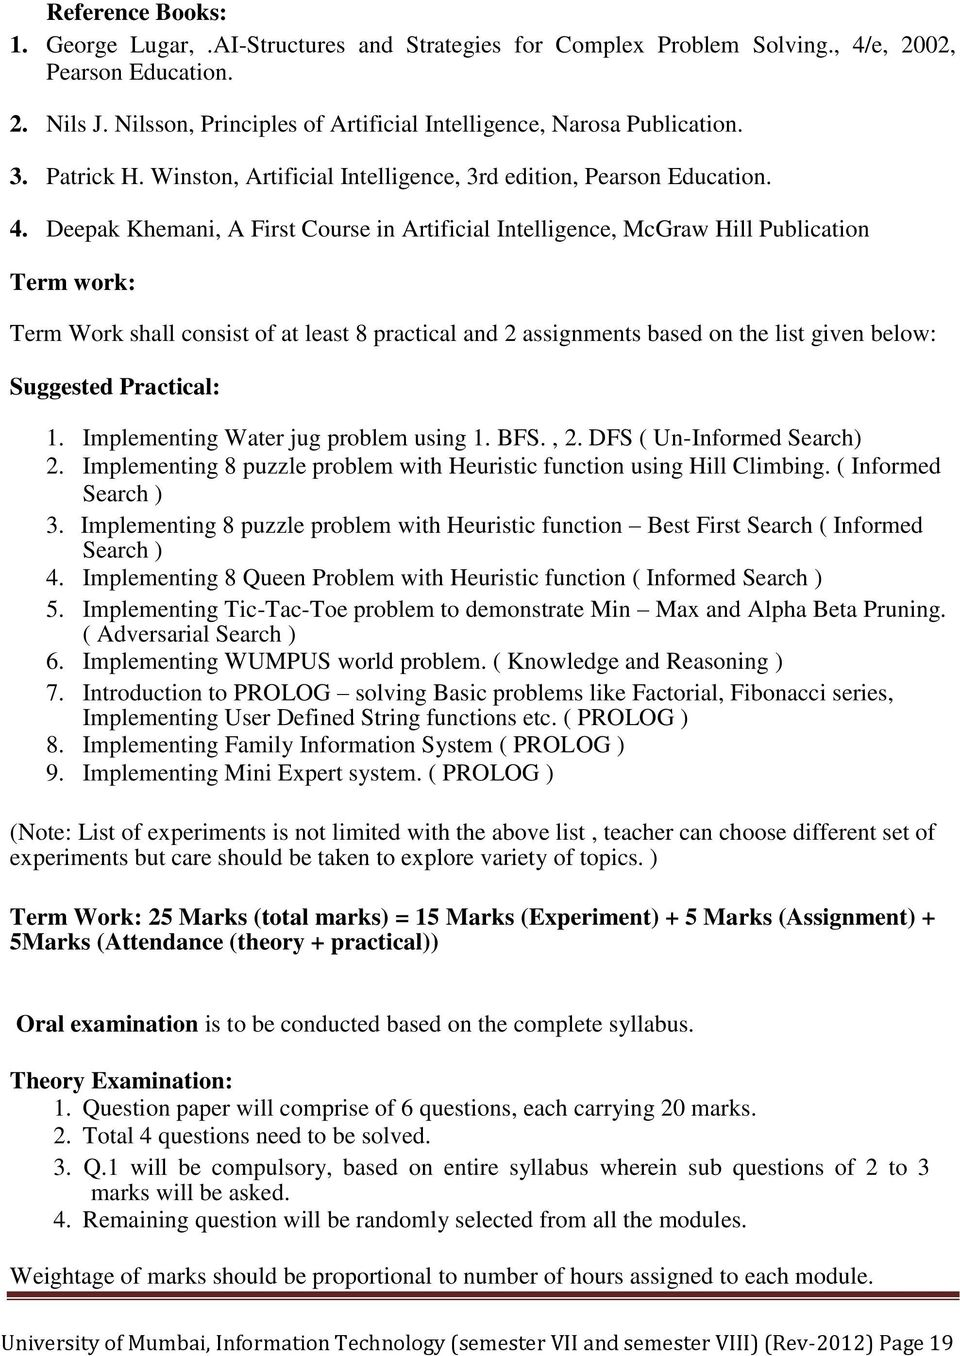 Deepak Khemani, A First Course in Artificial Intelligence, McGraw Hill Publication Term work: Term Work shall consist of at least 8 practical and 2 assignments based on the list given below: